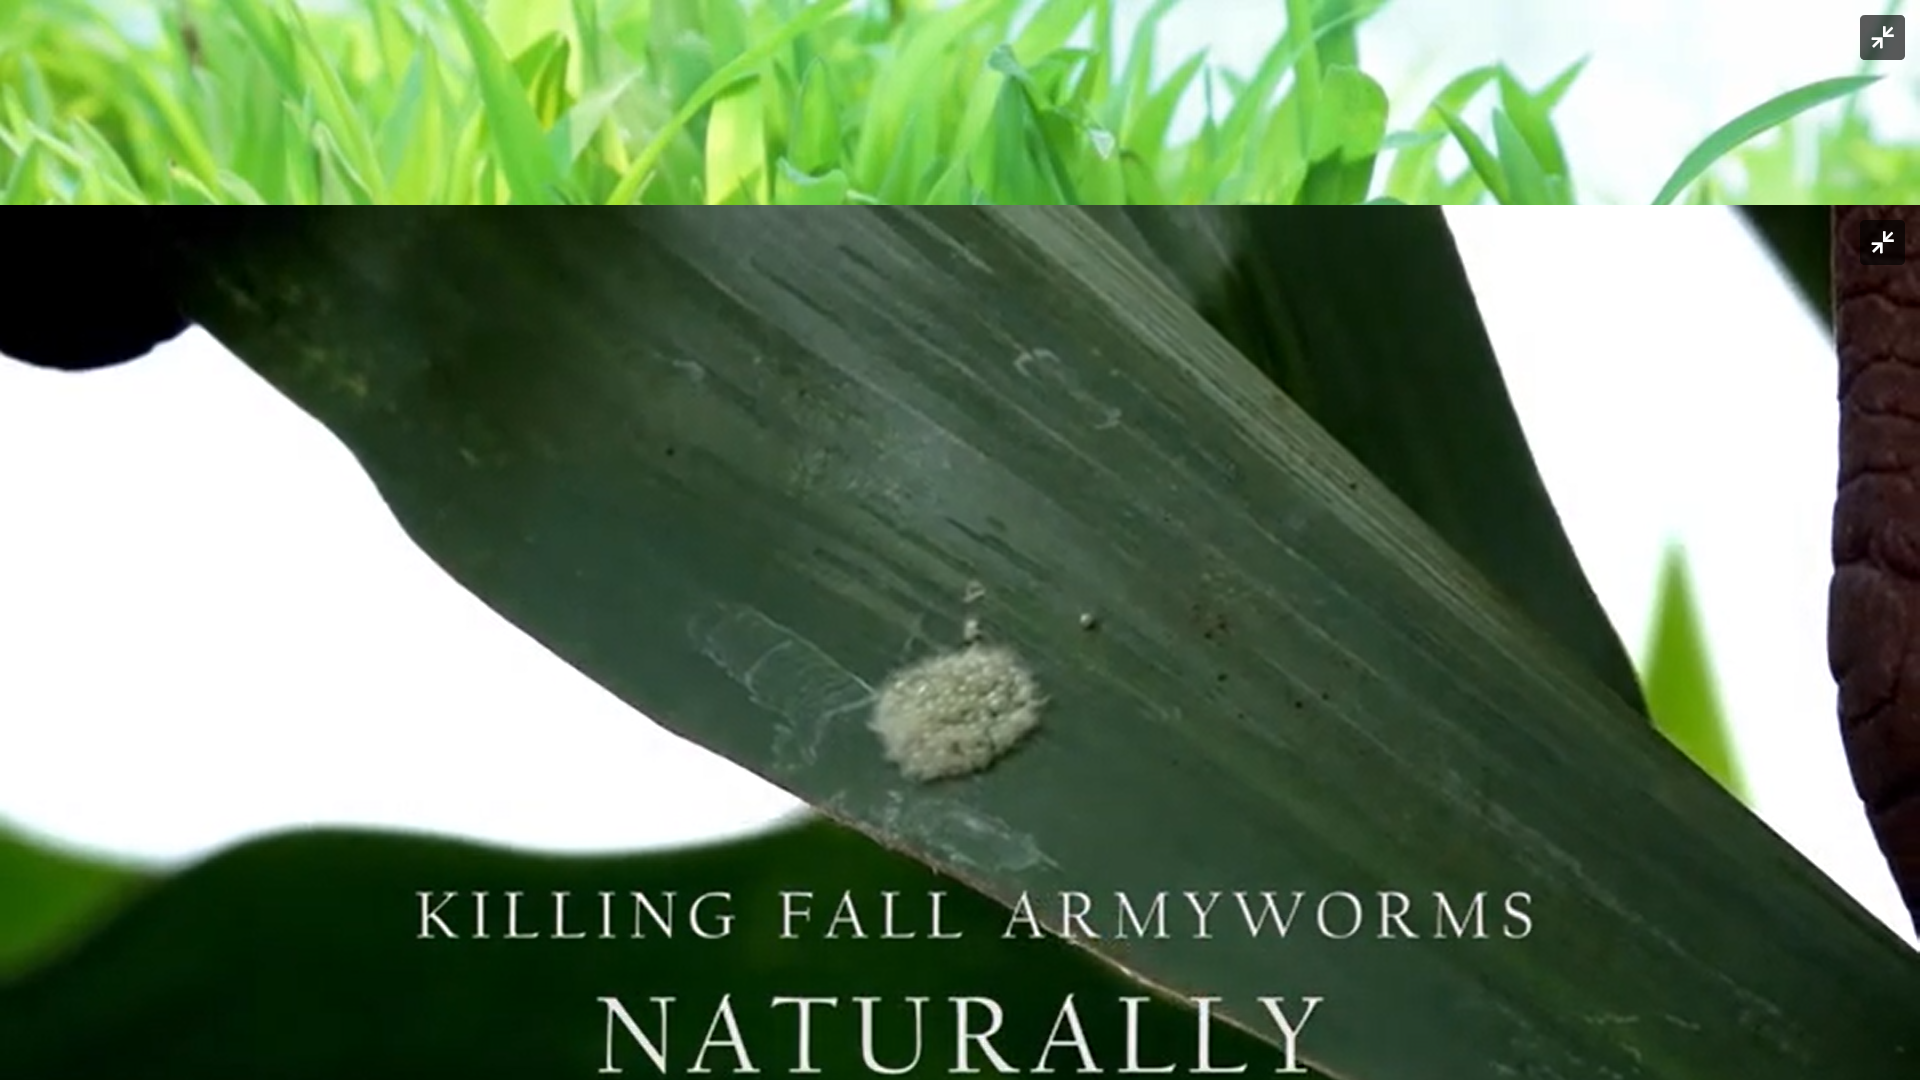 Killing Fall Armyworms